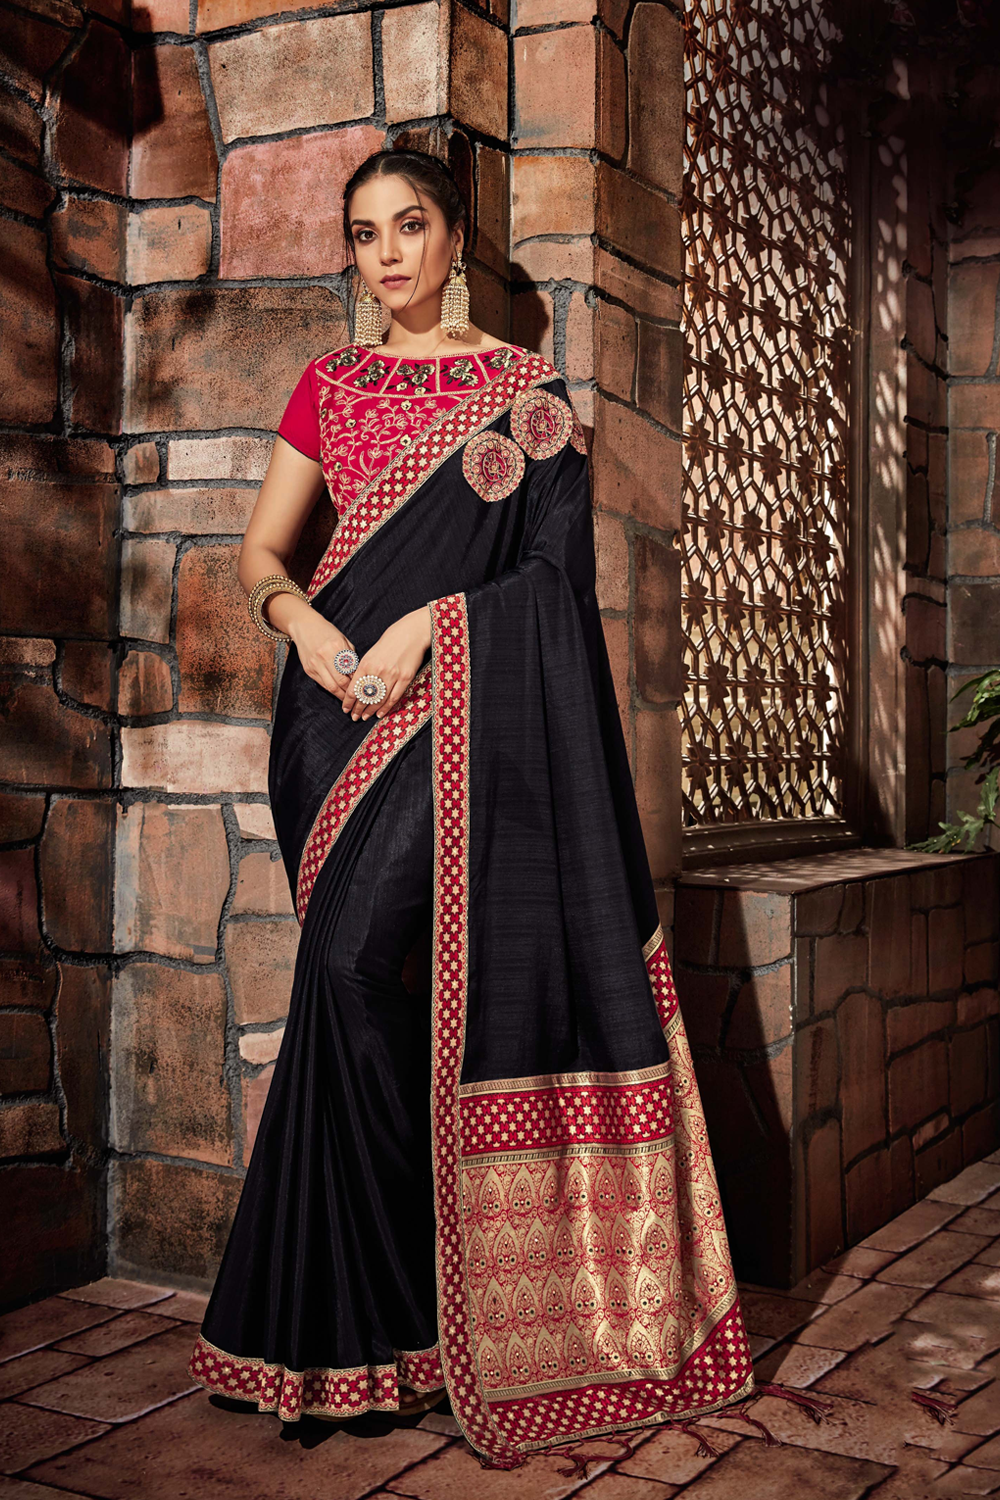 Black saree with geometrical and floral motifs